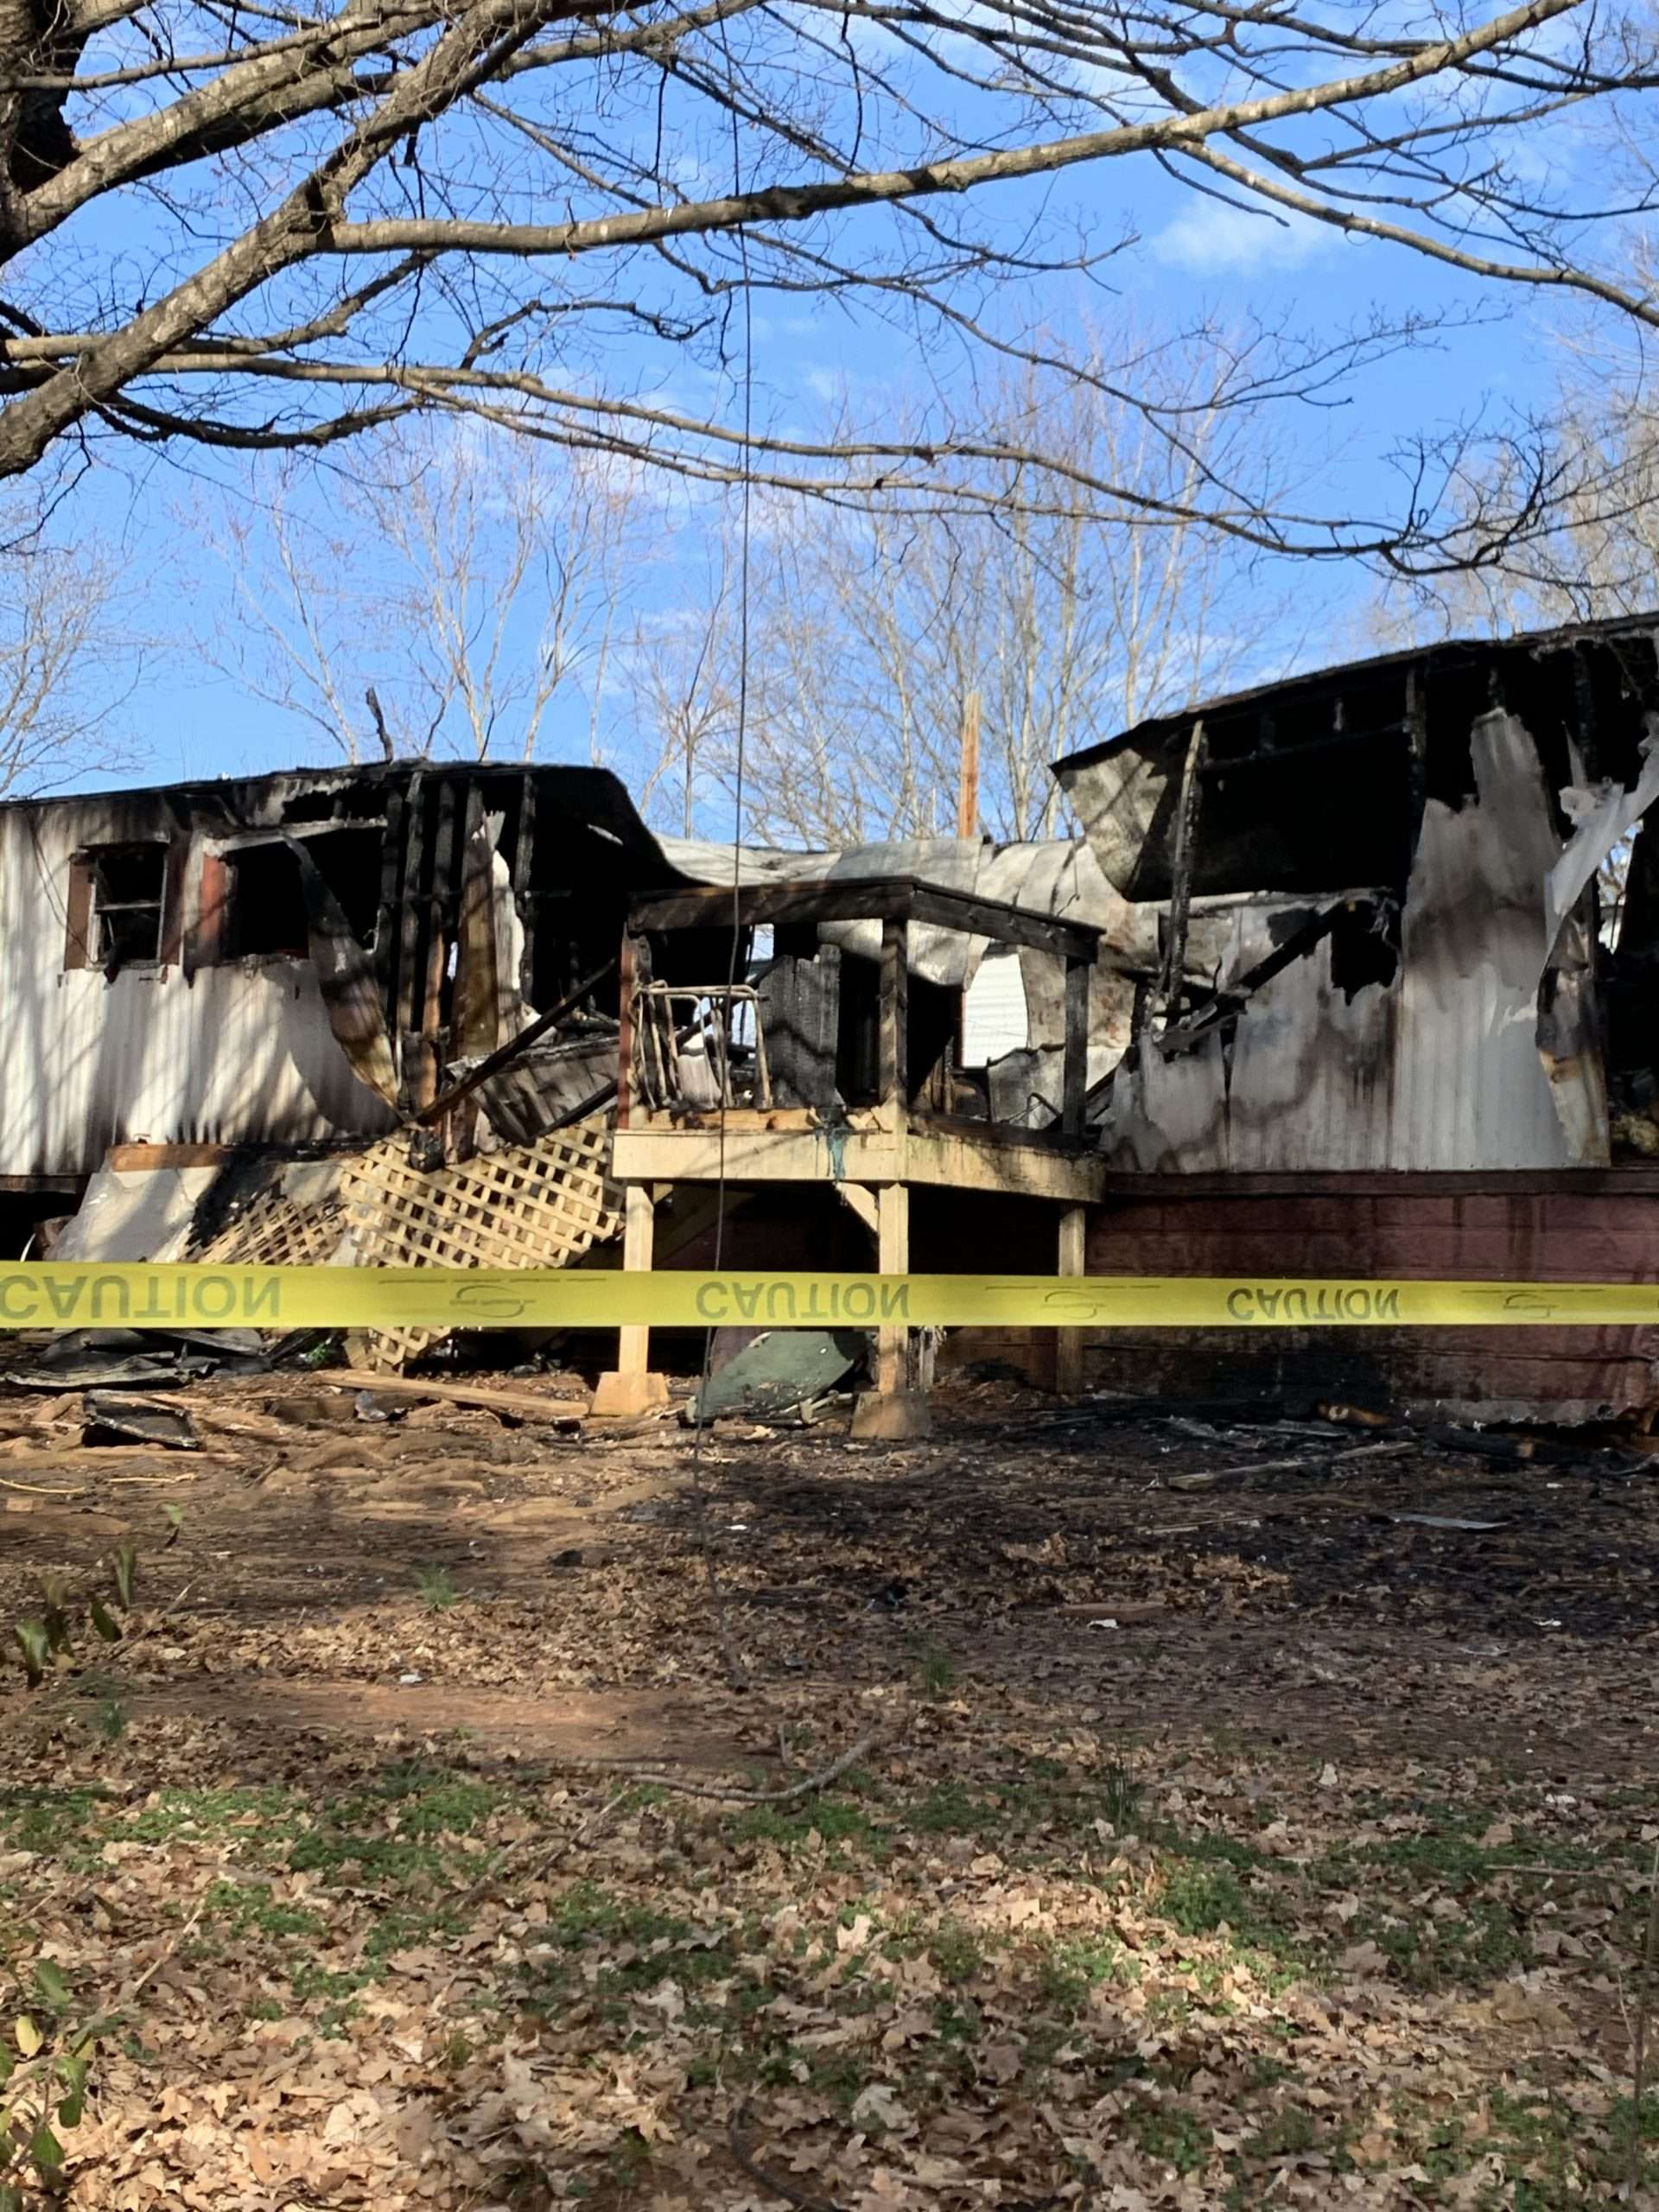 Bodies Of Two Children Found In SW Hickory Fire (Updated, 4:03 P.m. 2/21/21)